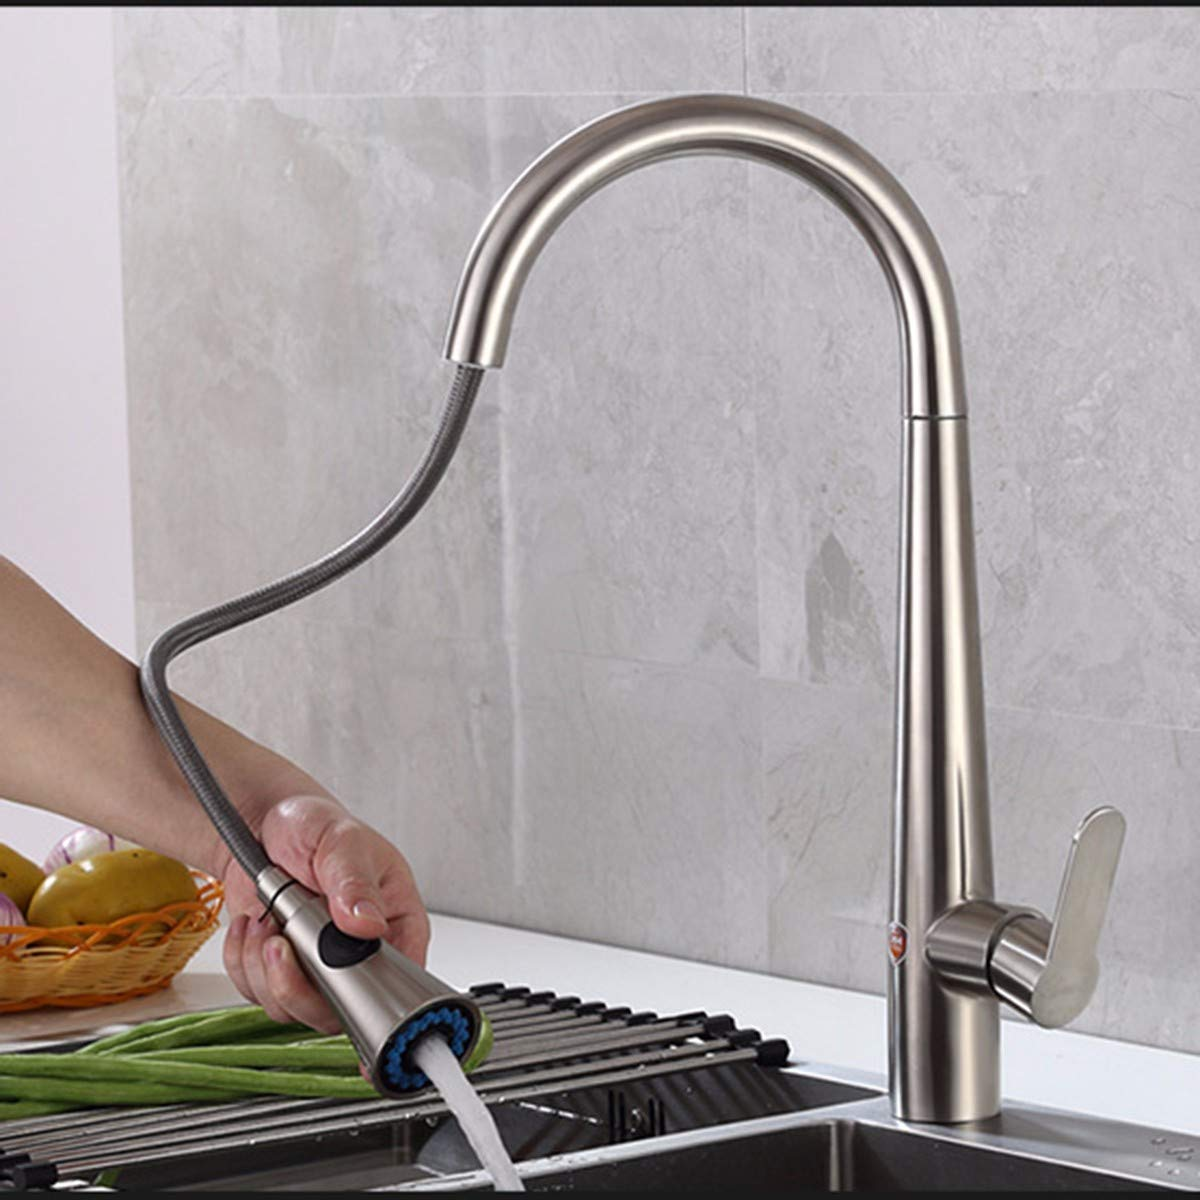 B QPGGP-Kitchen mixer mixer mixer Stainless steel kitchen faucet 304 cold and hot kitchen stainless steel washbasin mixing faucet,B bb4b01